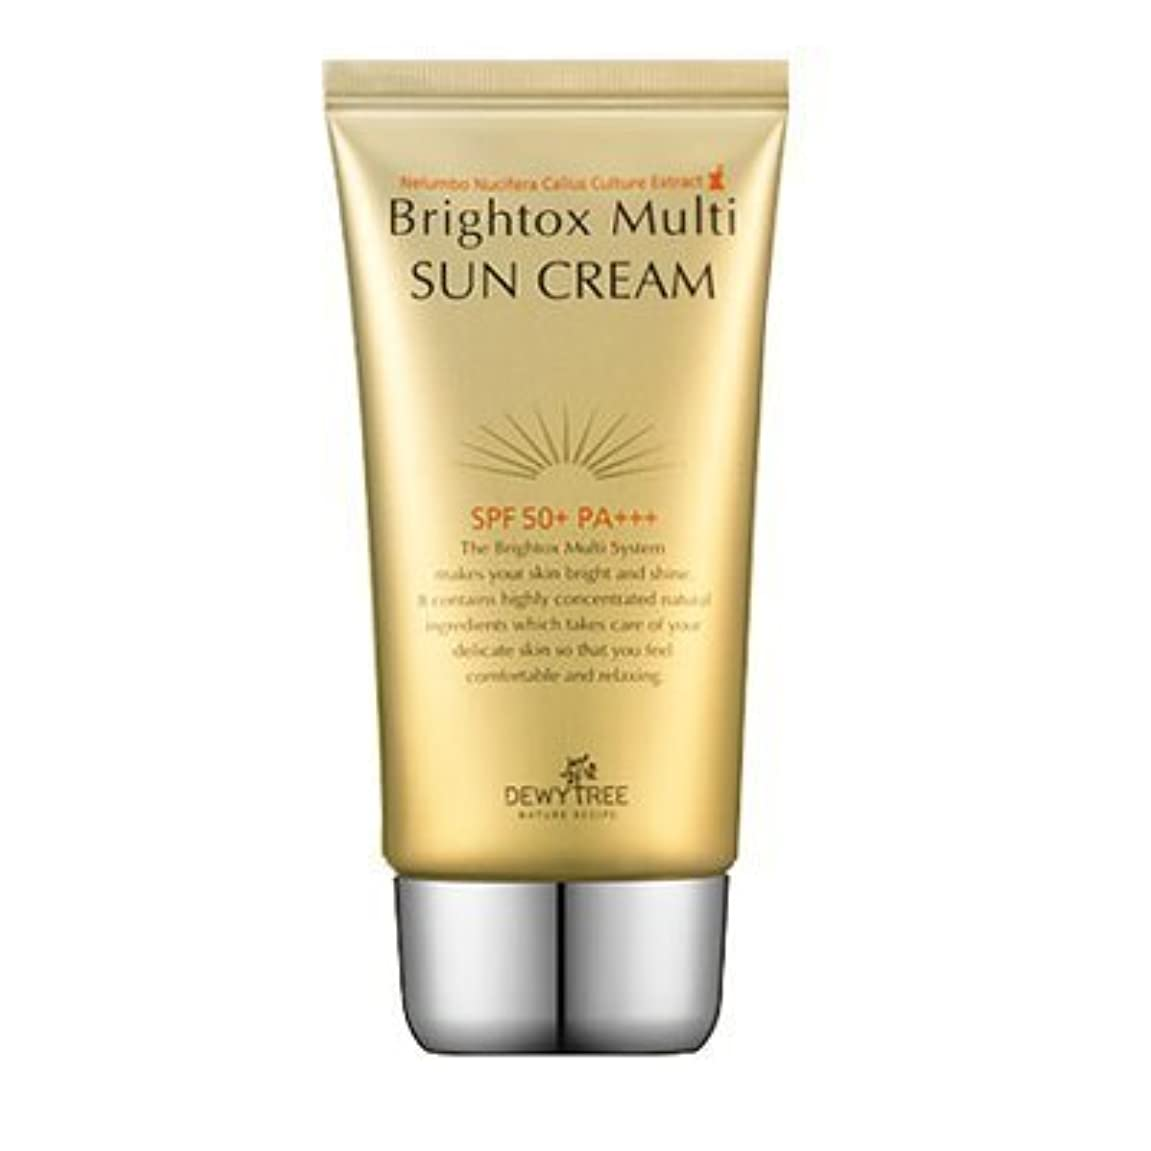 の中で肌寒いこどもセンターDewytree Brightox Multi SUN CREAM SPF50+, PA+++50ml